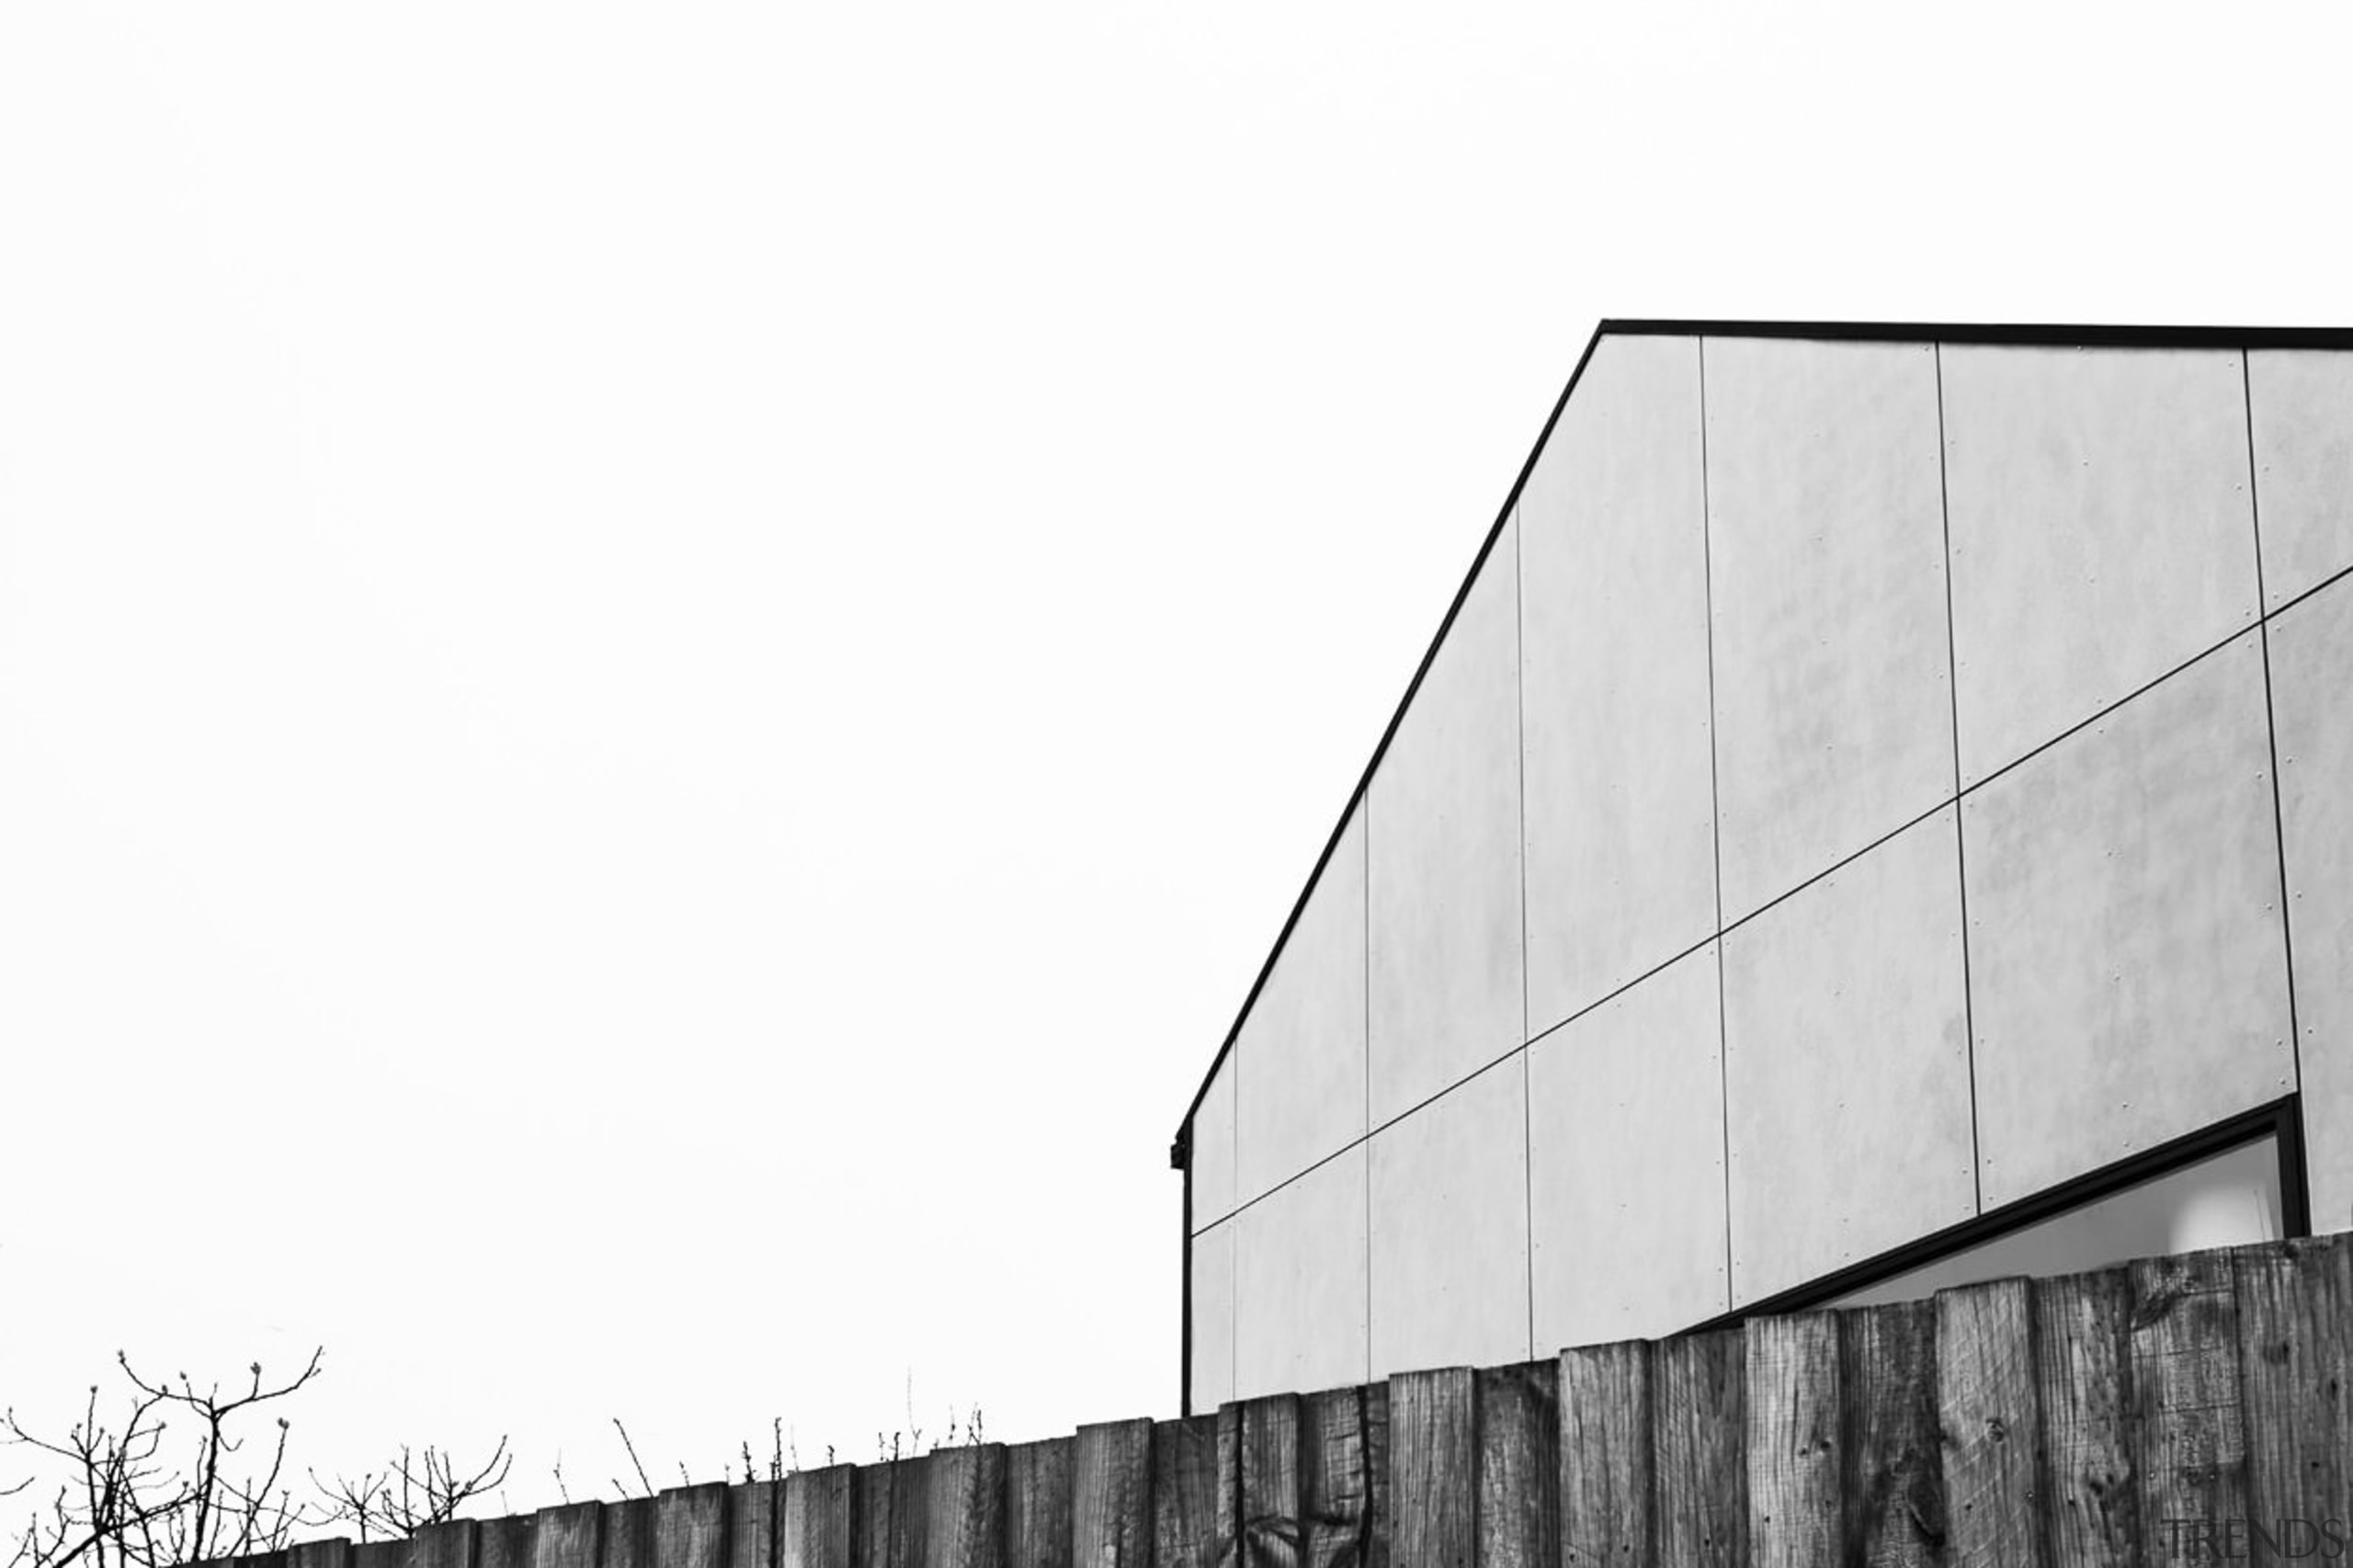 The traditional gable form, given a contemporary overhaul angle, architecture, black and white, building, daytime, facade, house, line, monochrome, monochrome photography, photography, roof, sky, structure, wall, wood, white